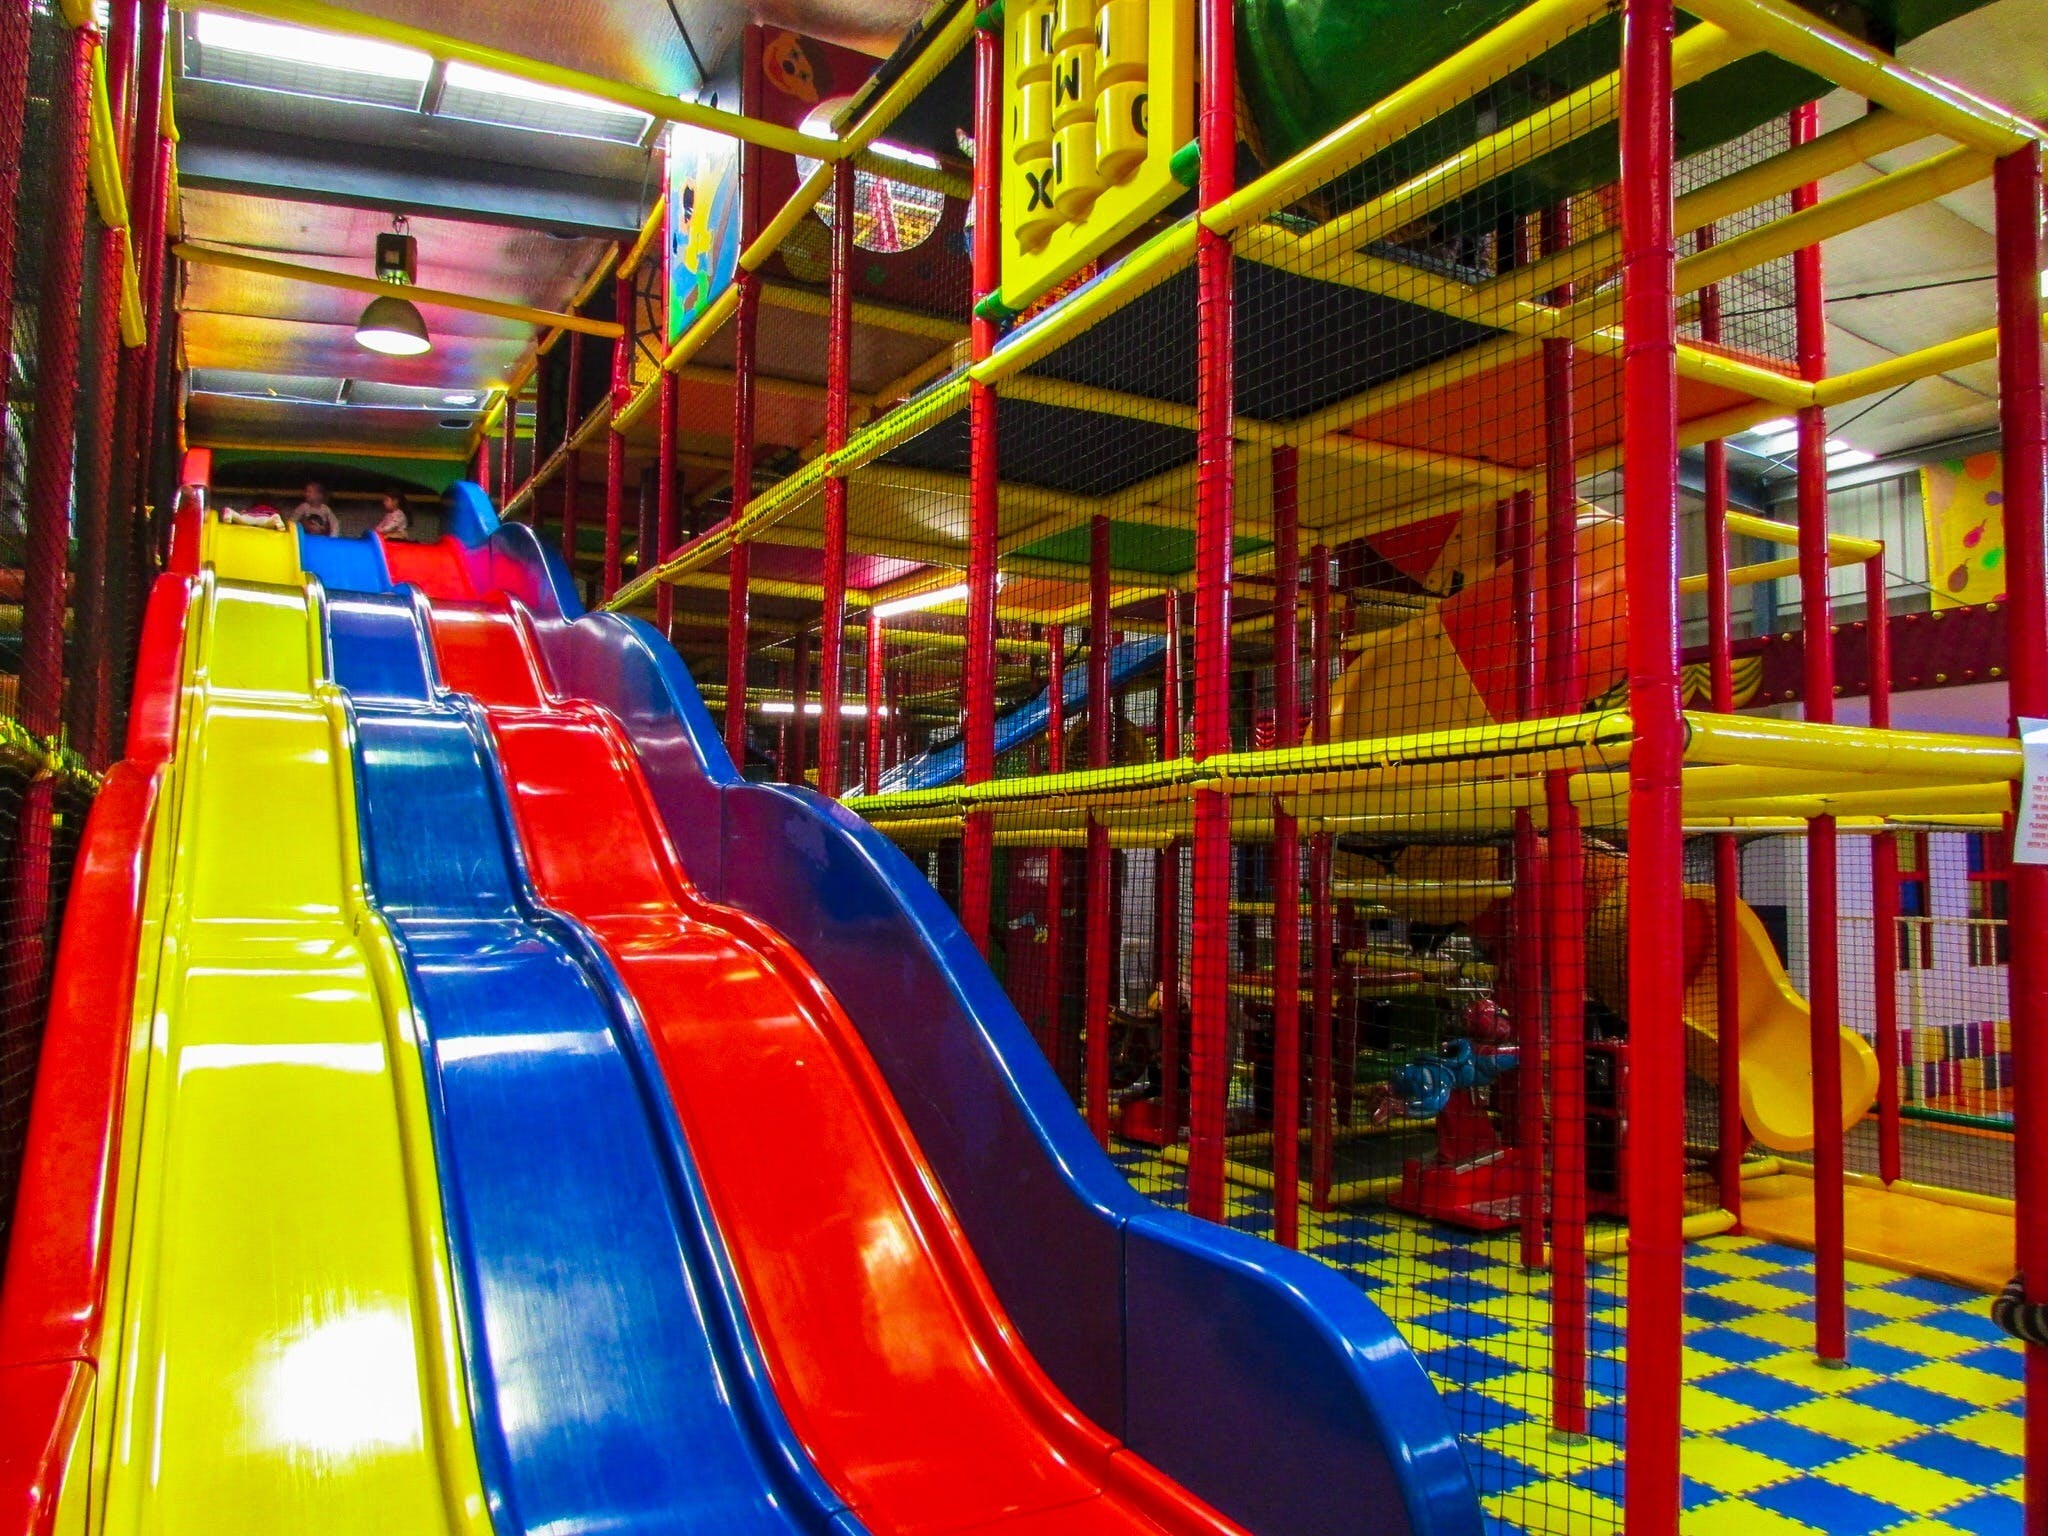 Kidz Shed Indoor Play Centre and Cafe - Australia Accommodation